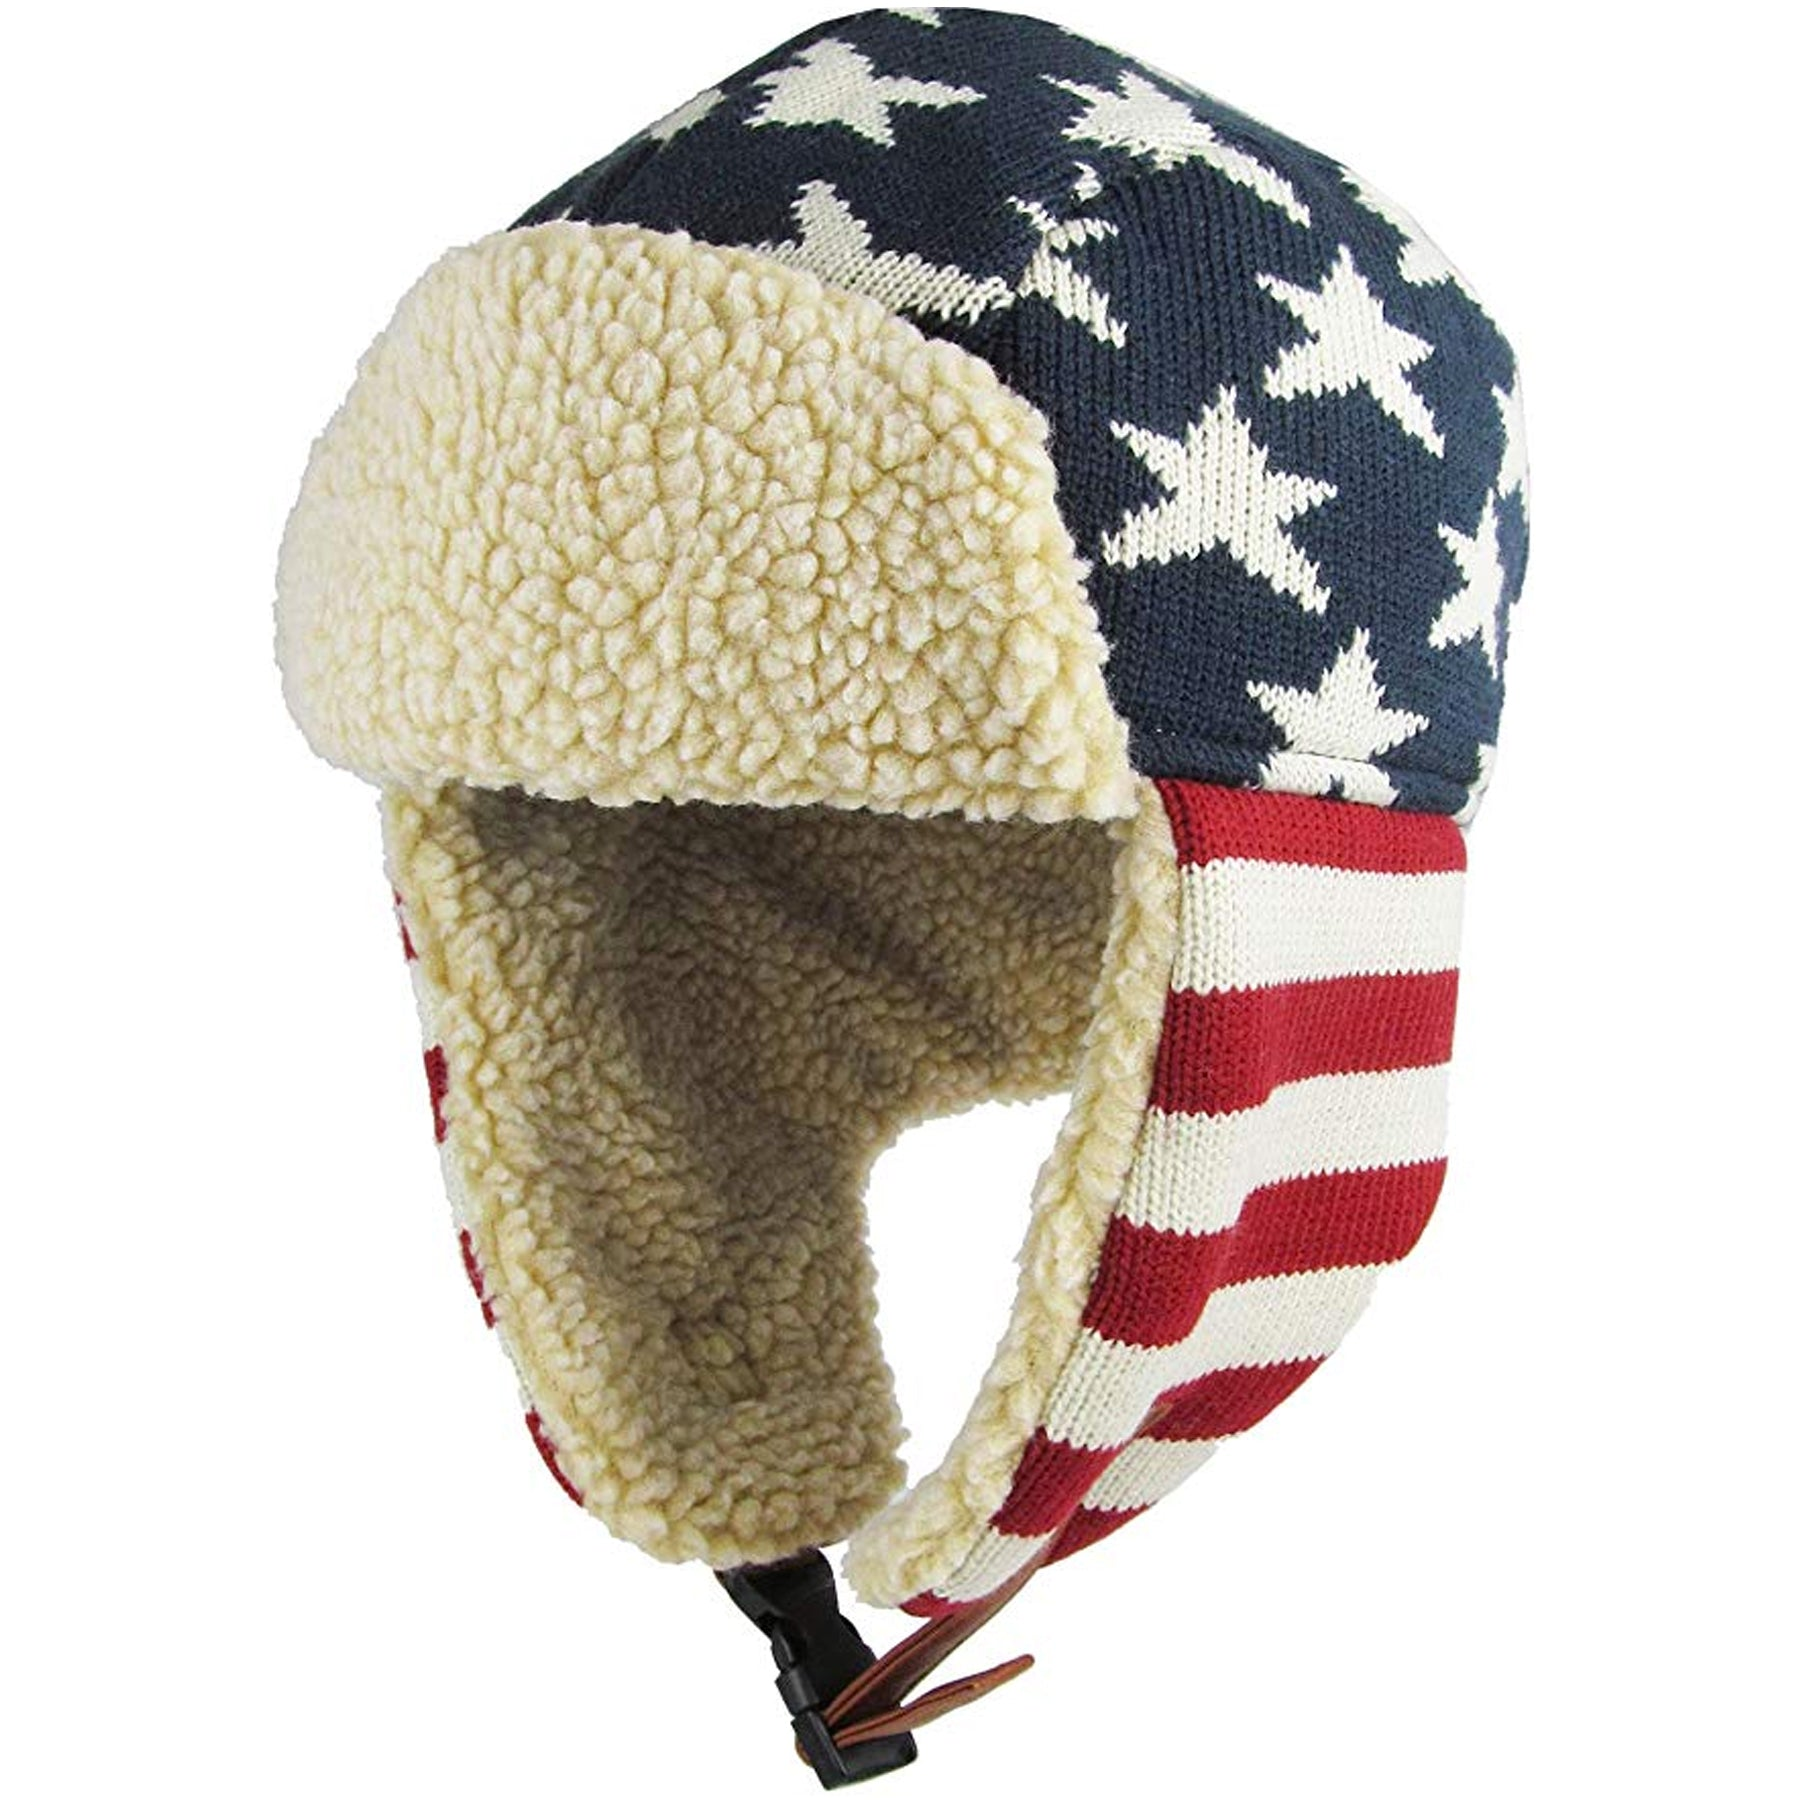 The top of the usa stars and stripes ushanka trapper hat has white stars  jpg 1800x1800 81df80669af